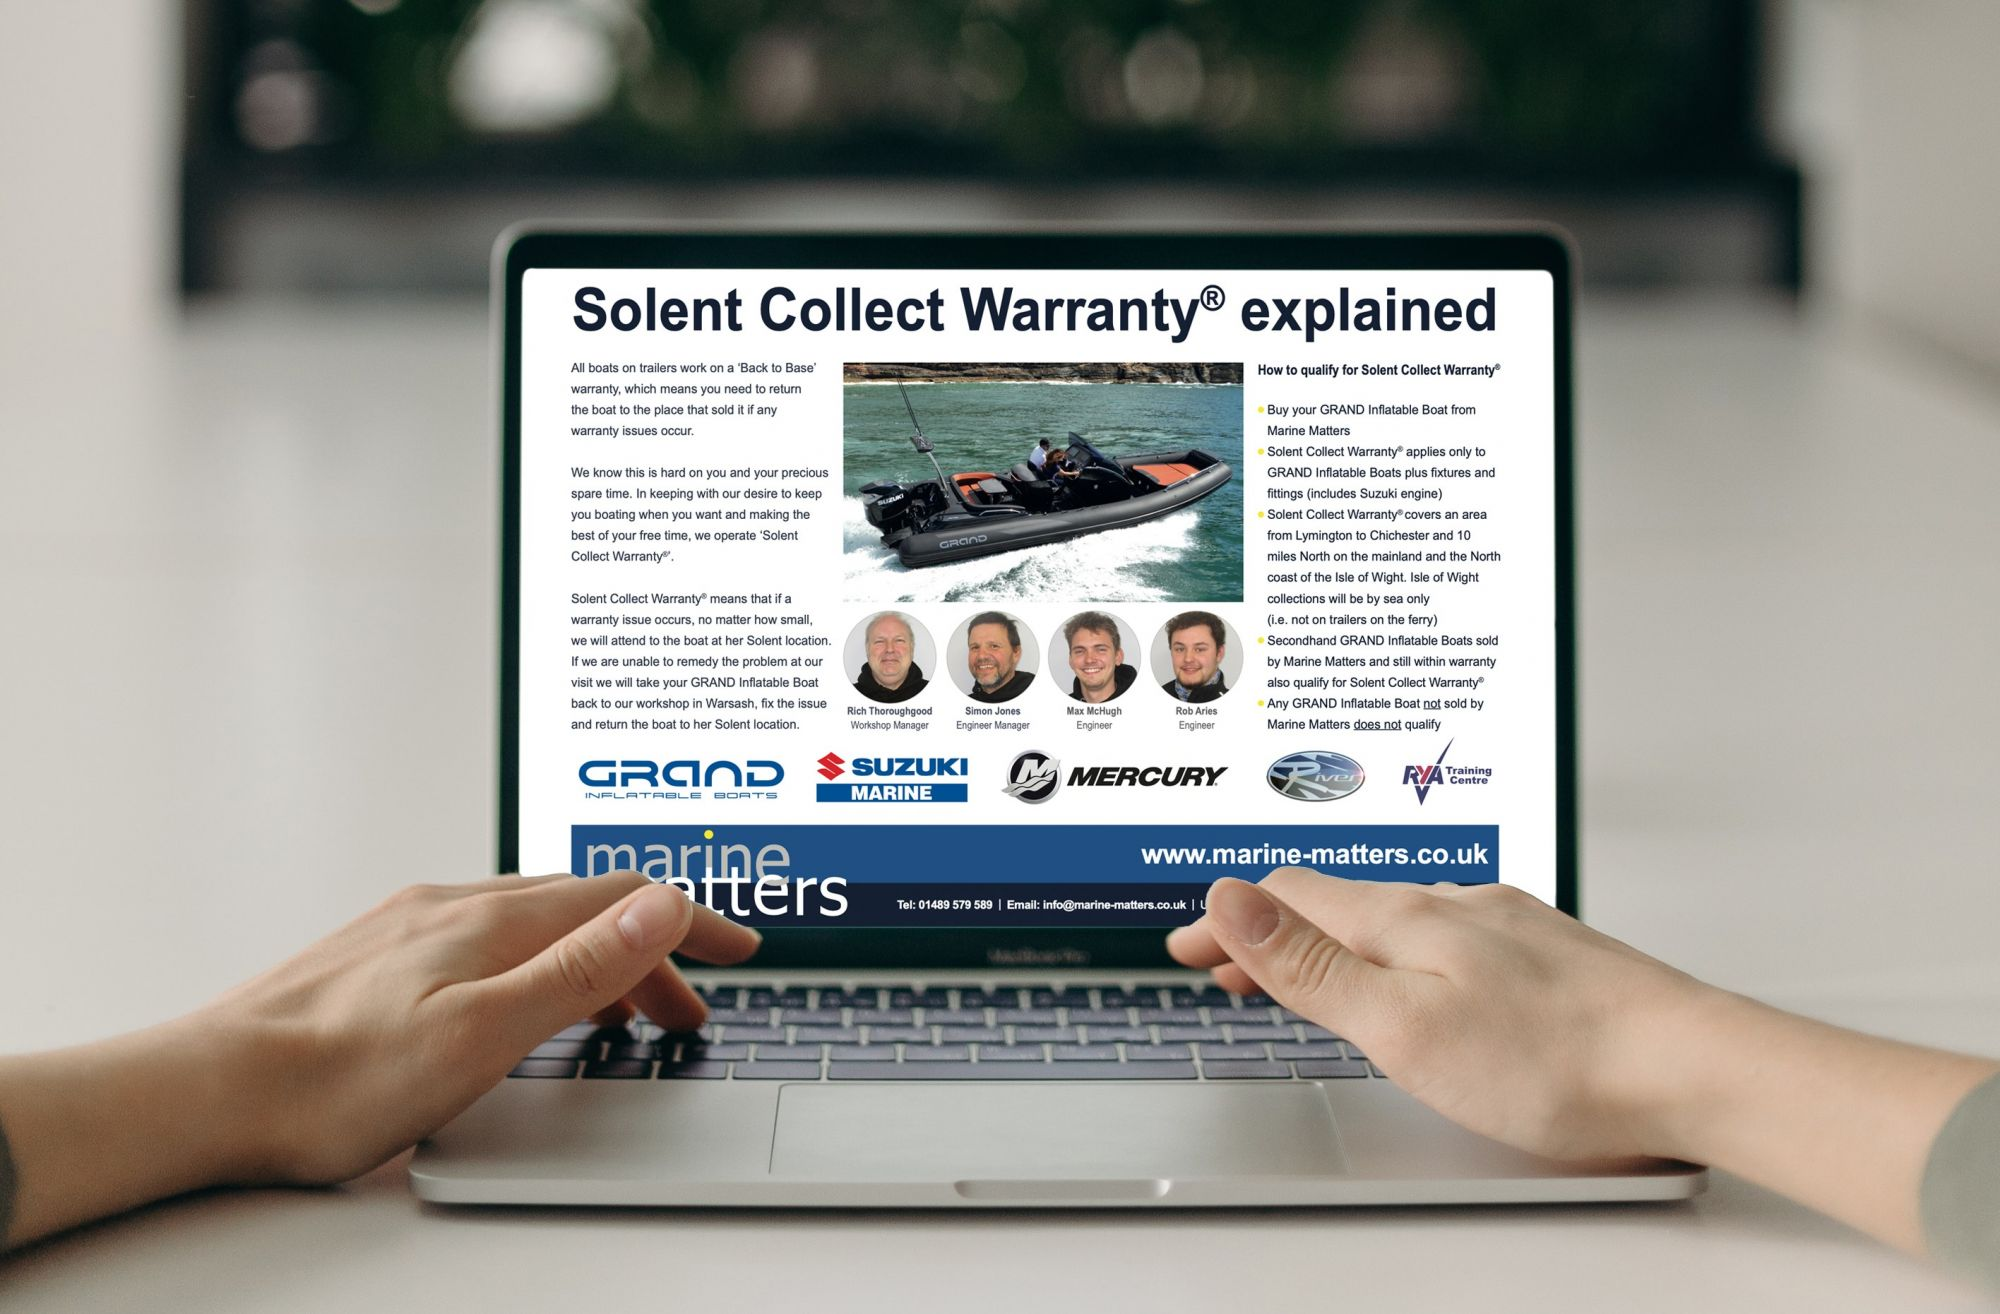 Solent Collect Warranty® explained